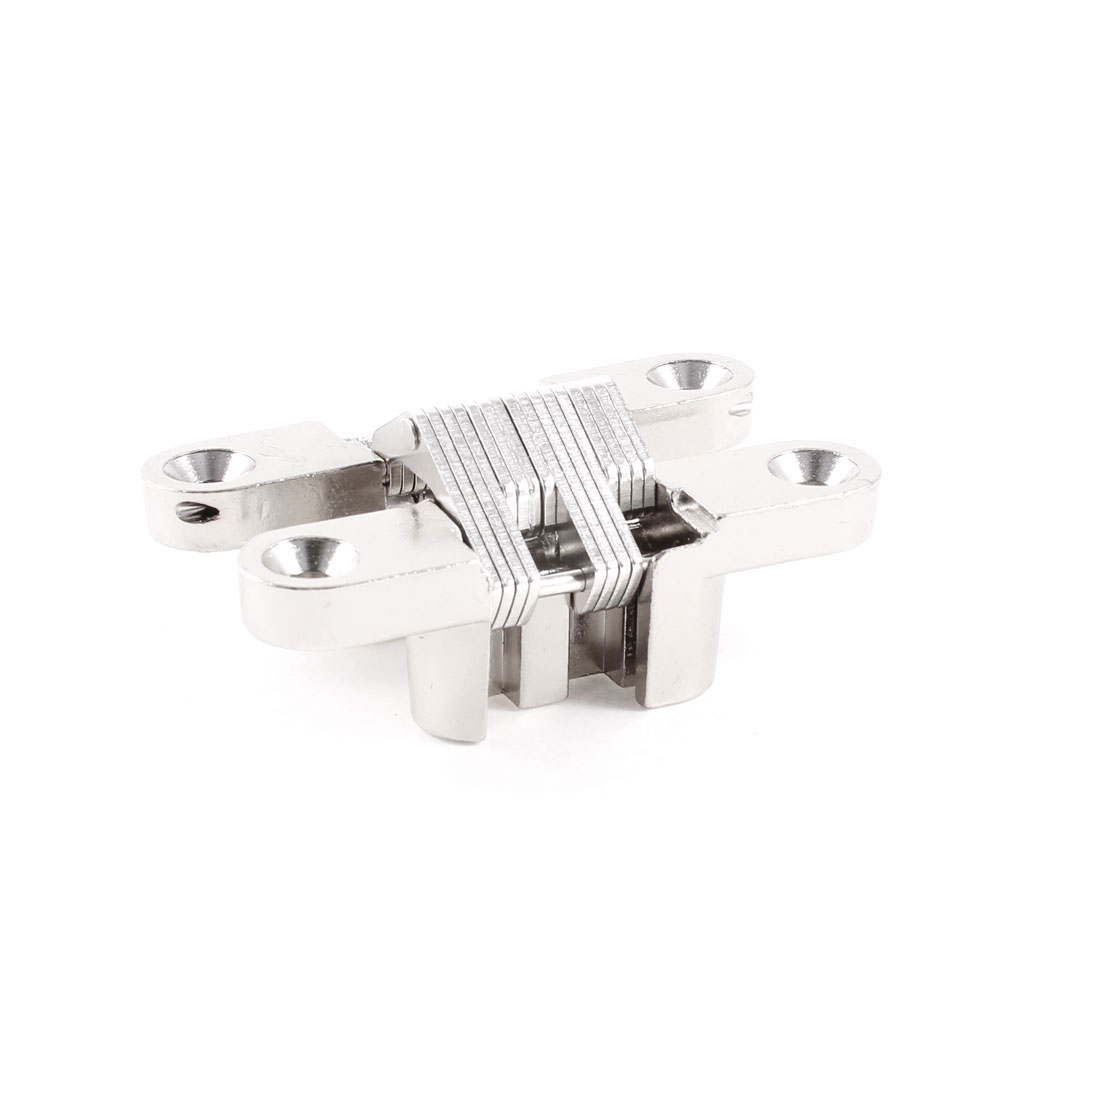 180 Degree Turning Concealed Cross Hinge 60mm Long for Furniture Door